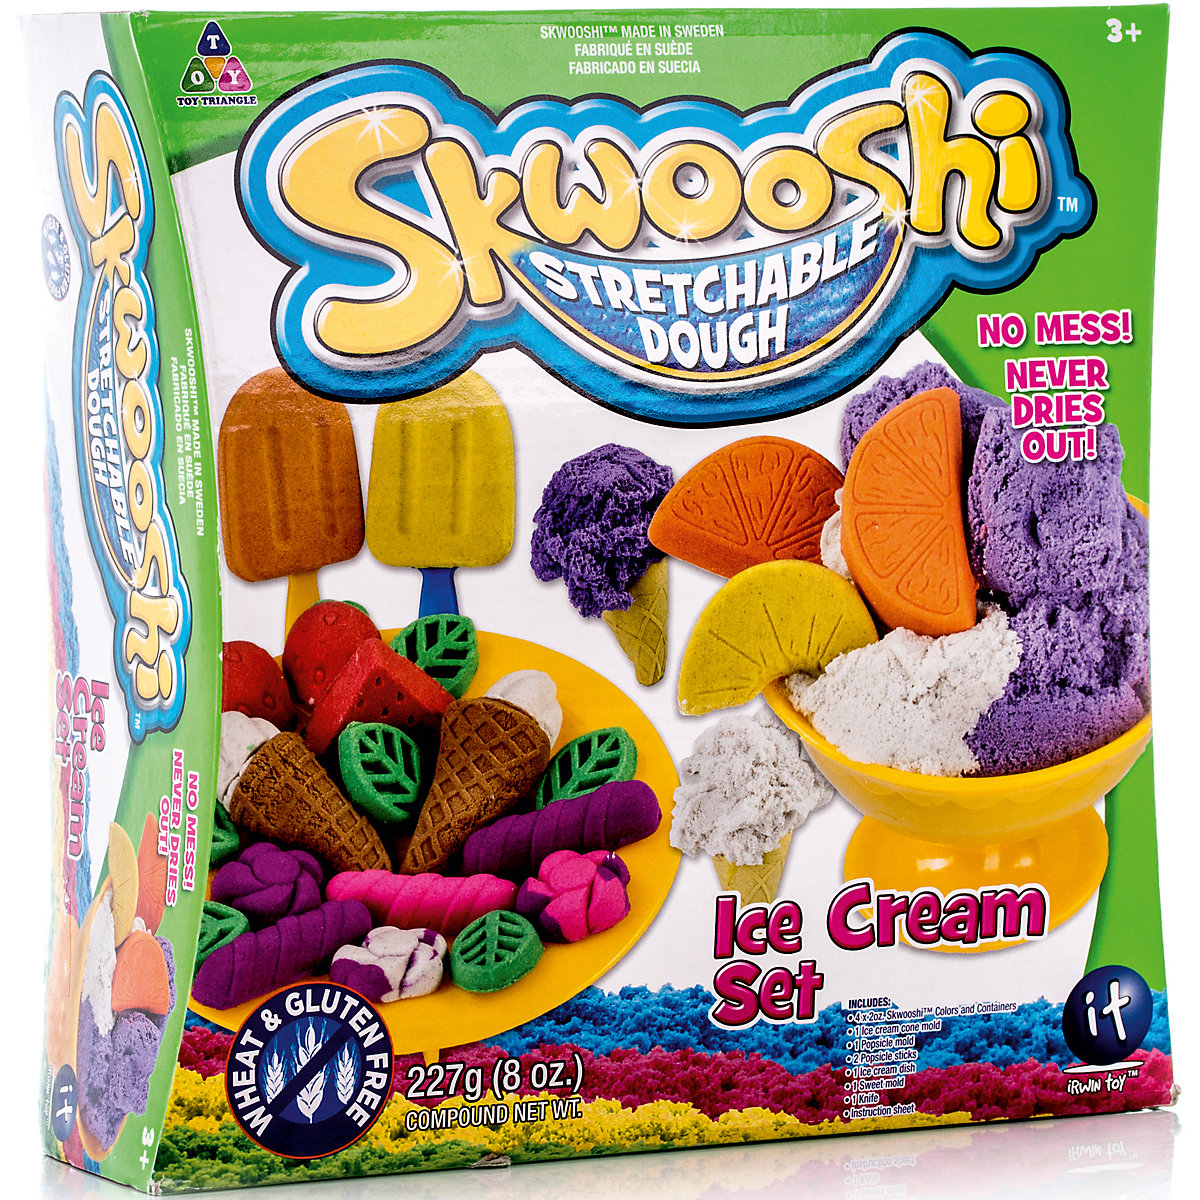 SKWOOSHI Modeling Clay/Slime 4928970 office plasticine hand gum sculpt kids girl boy girls boys for children play doh modeling clay slime 8606530 office plasticine hand gum sculpt kids girl boy girls boys for children play doh